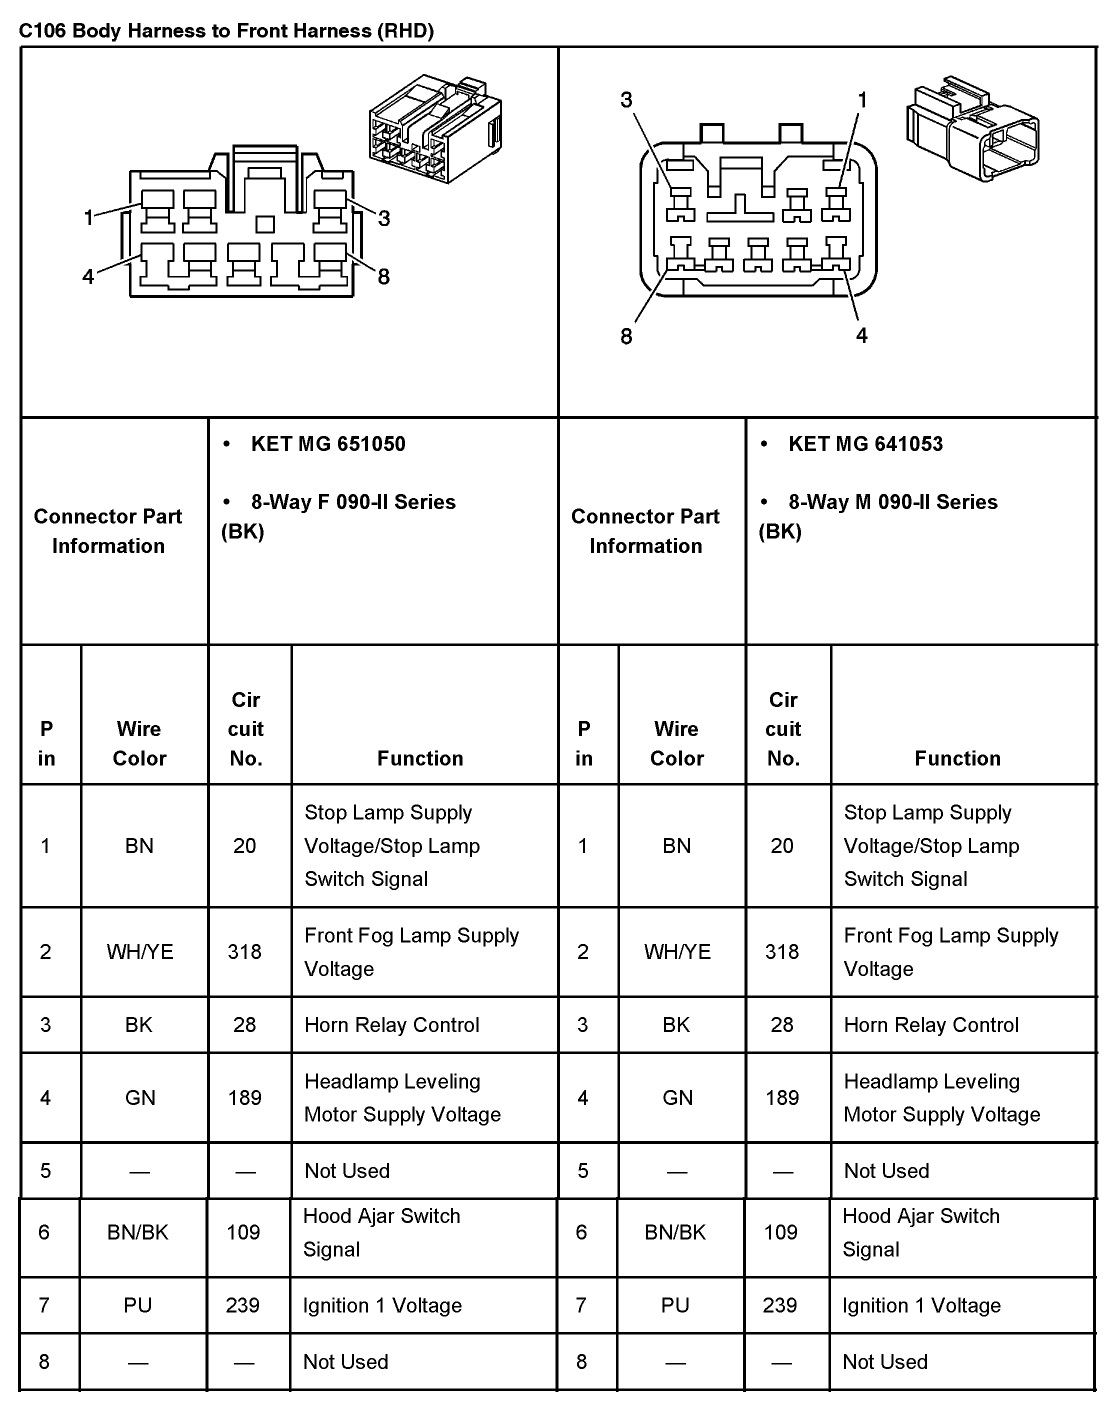 7331d1383704576 2005 aveo master connector list diagrams conn3 jpg 2005 aveo master connector list and diagrams 2006 chevy aveo fuse box diagram at downloadfilm.co